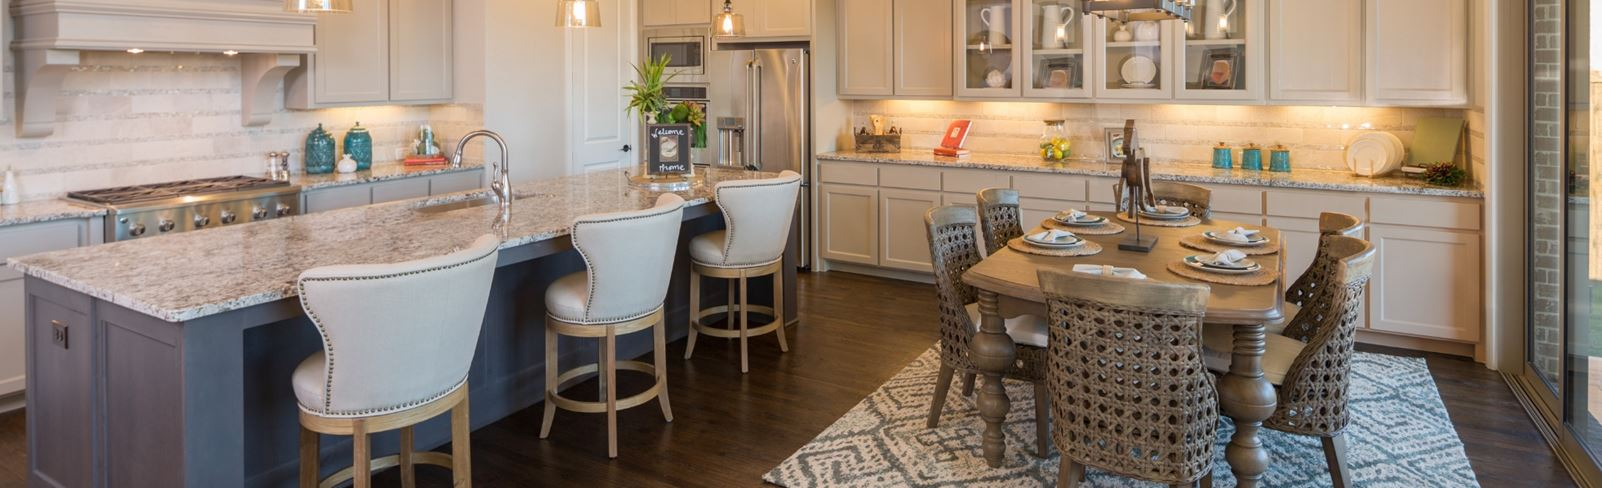 Britton Homes Model Kitchen in Hollyhock in Frisco, TX